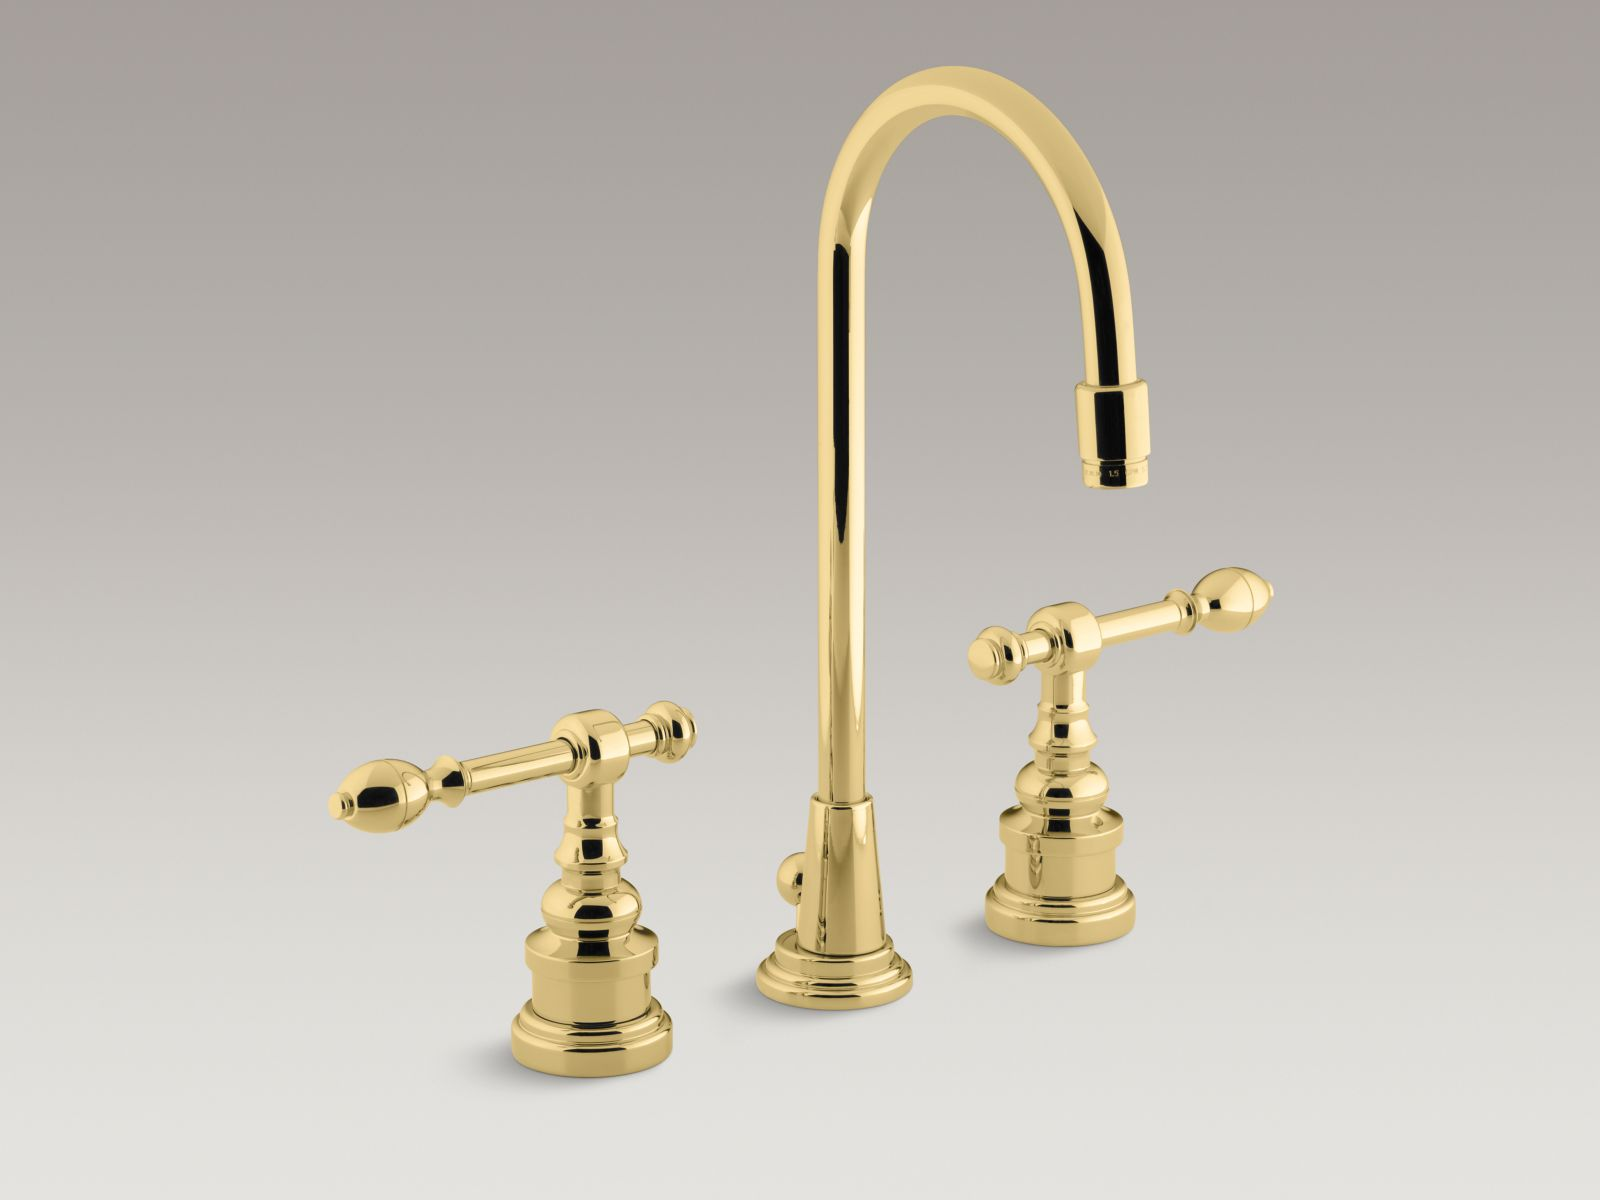 BuyPlumbing.net - Product: Kohler K-6811-4-SN IV Georges Brass ...